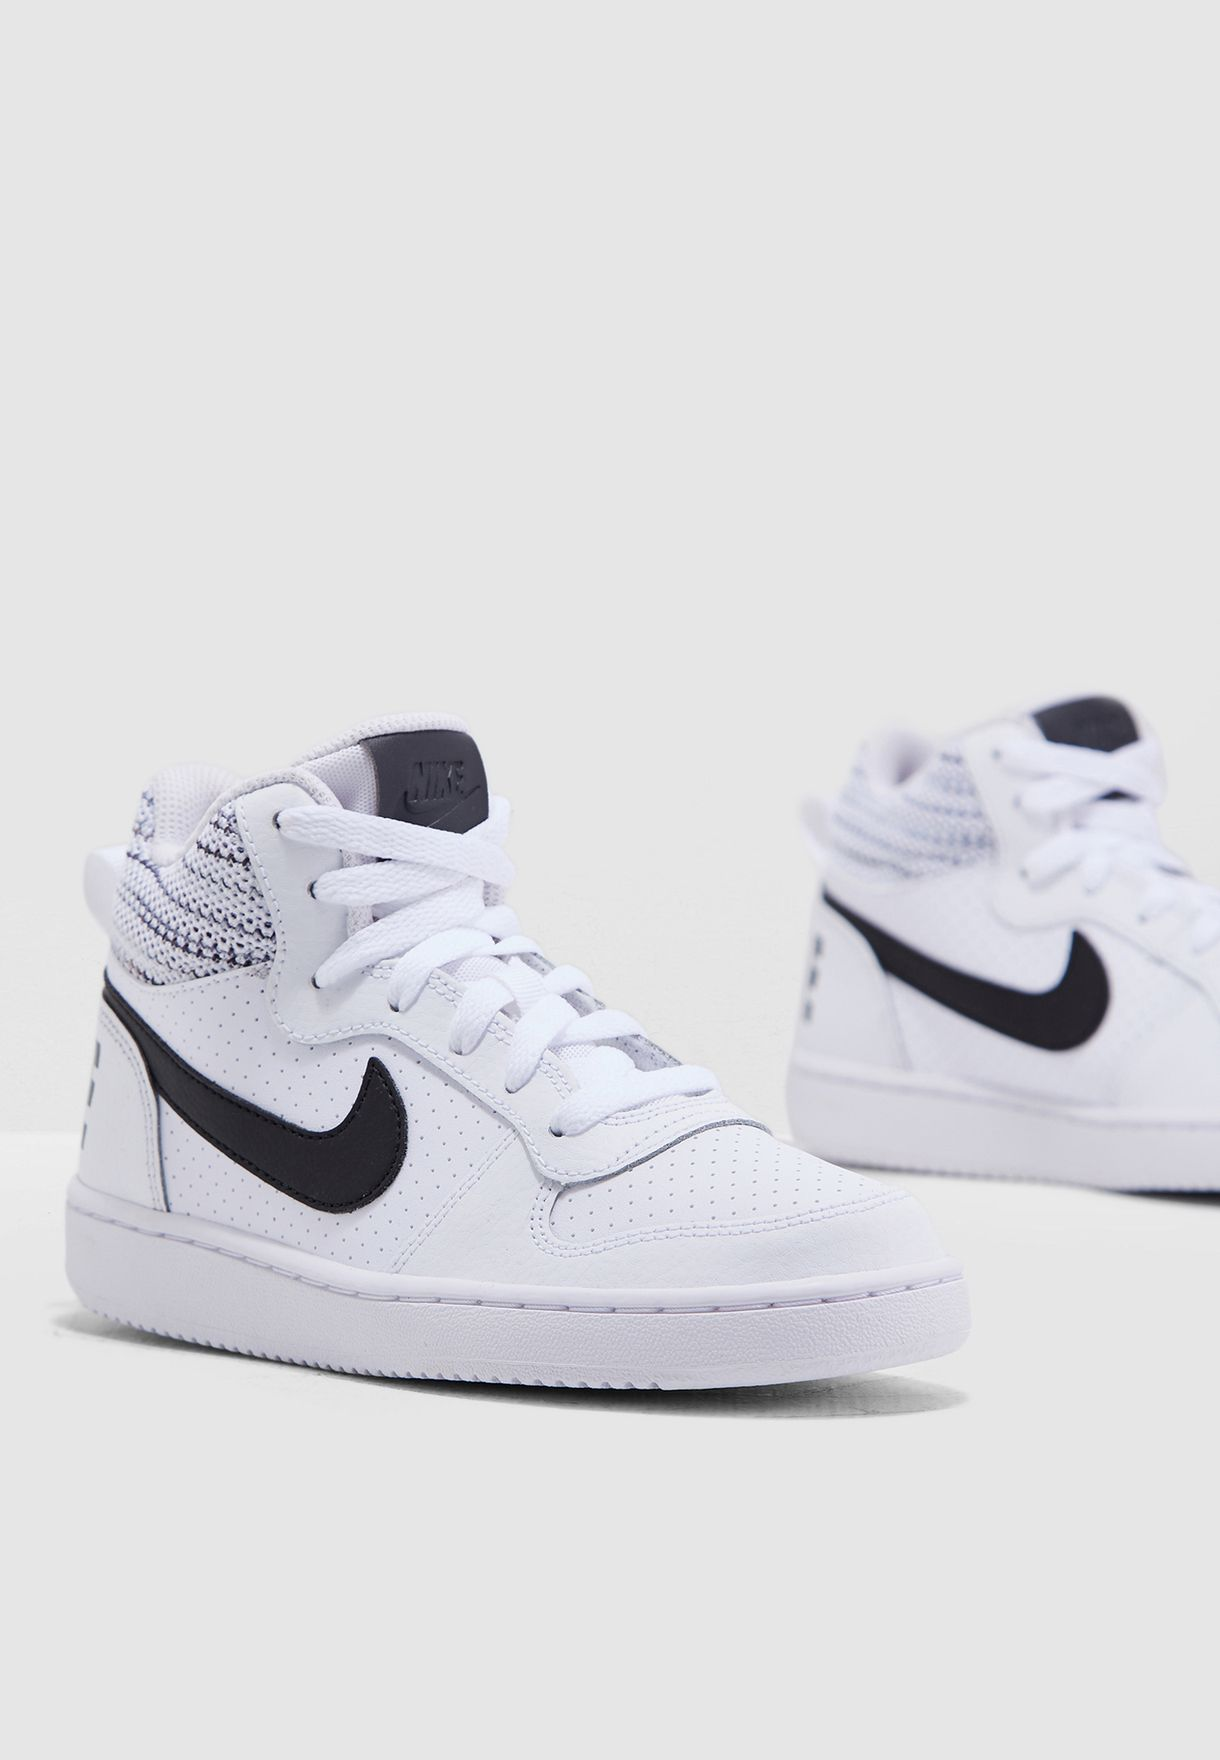 b80a45948b42a7 Shop Nike white Youth Court Borough Mid SE 918340-100 for Kids in ...